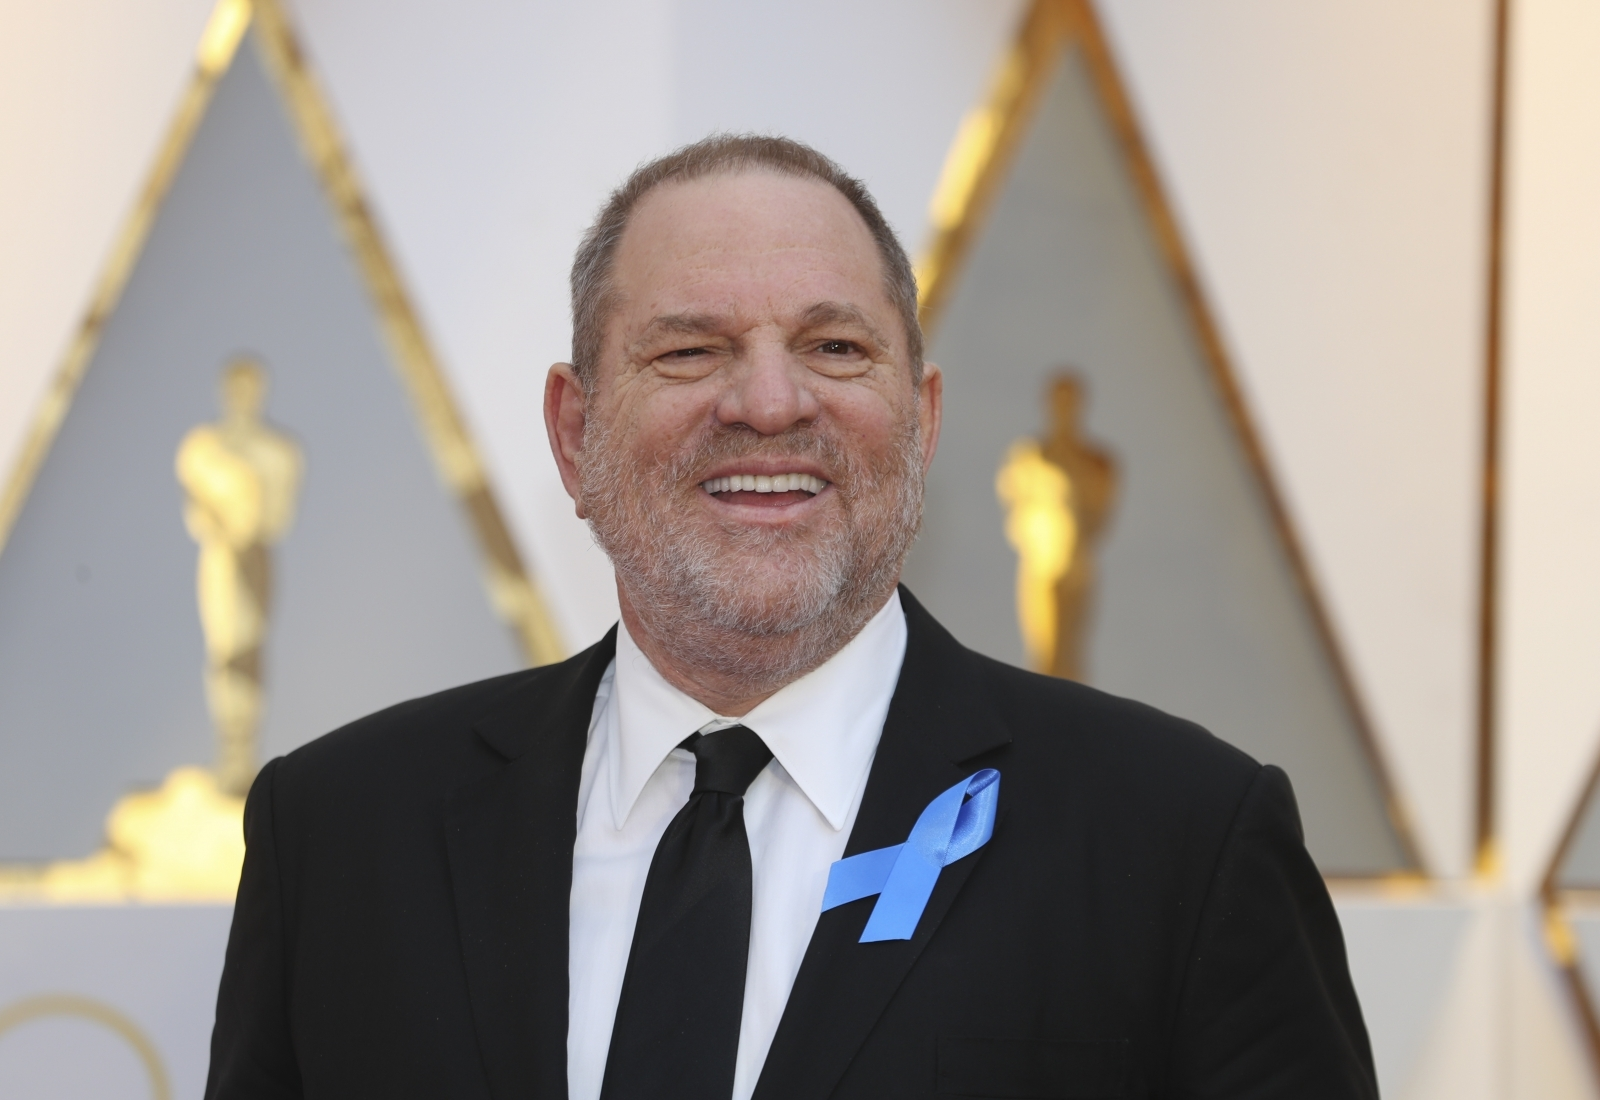 Harvey Weinstein Fired From Weinstein Company After Sexual Harassment Allegations